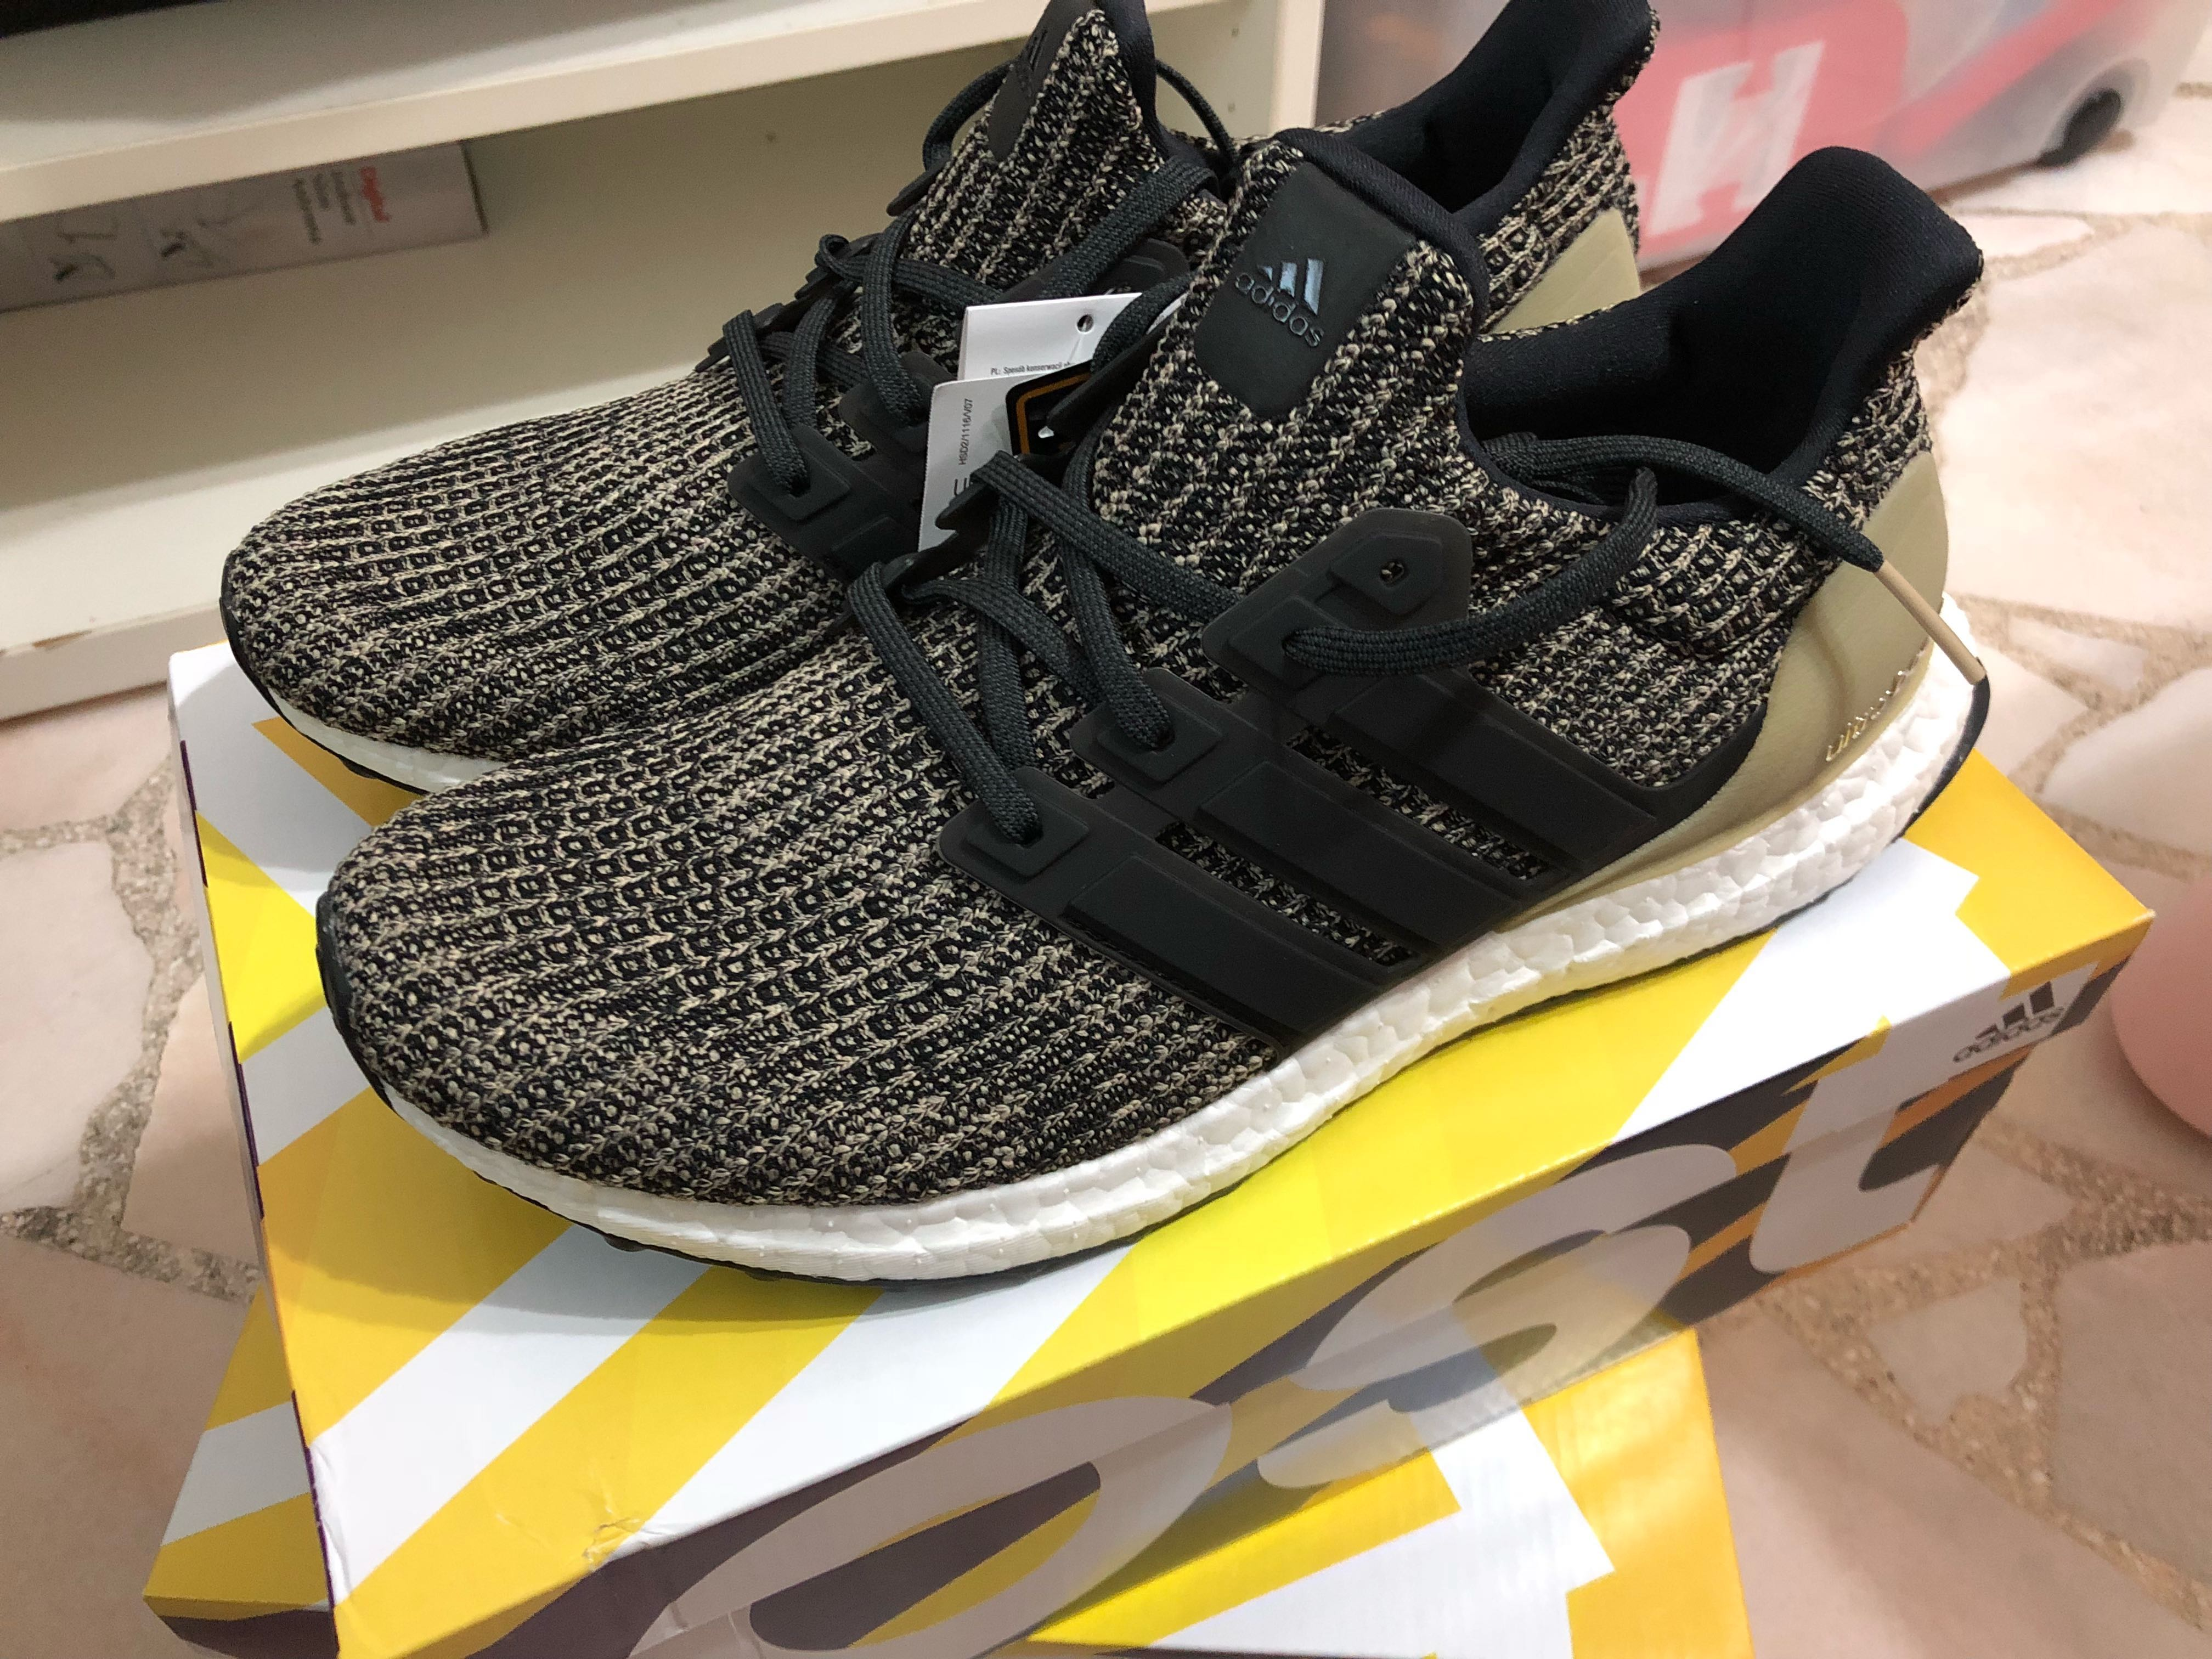 6d20ec733 Adidas Ultra Boost 4.0 Core Black Raw Gold